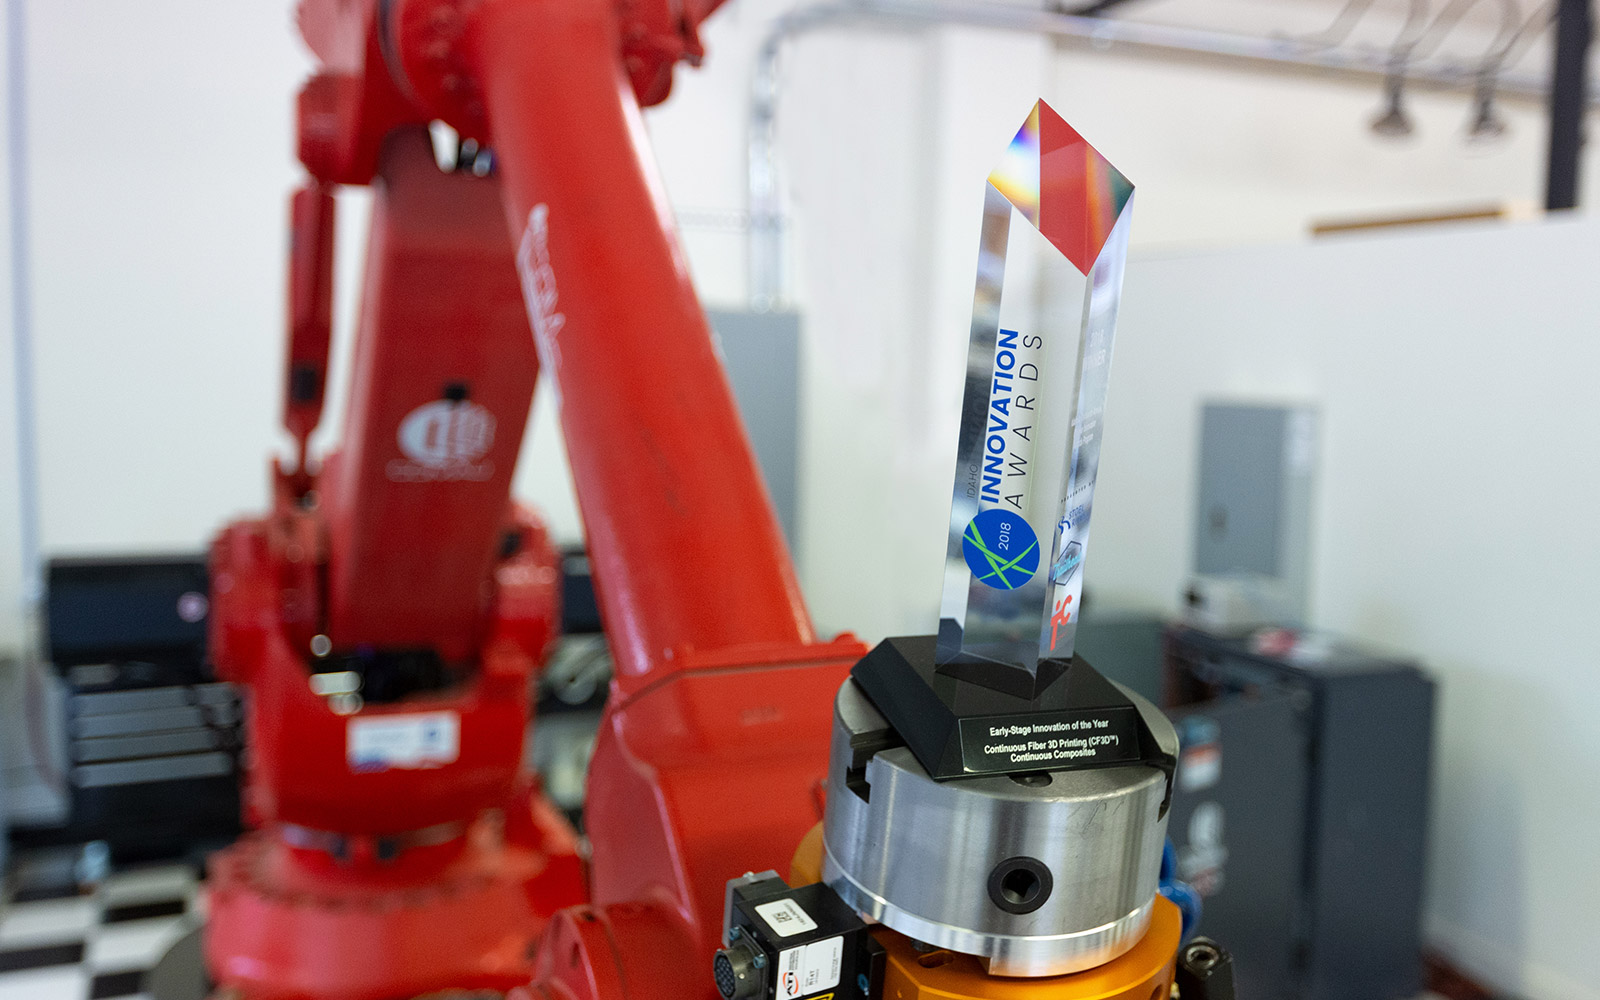 Comau robotic arm holding award